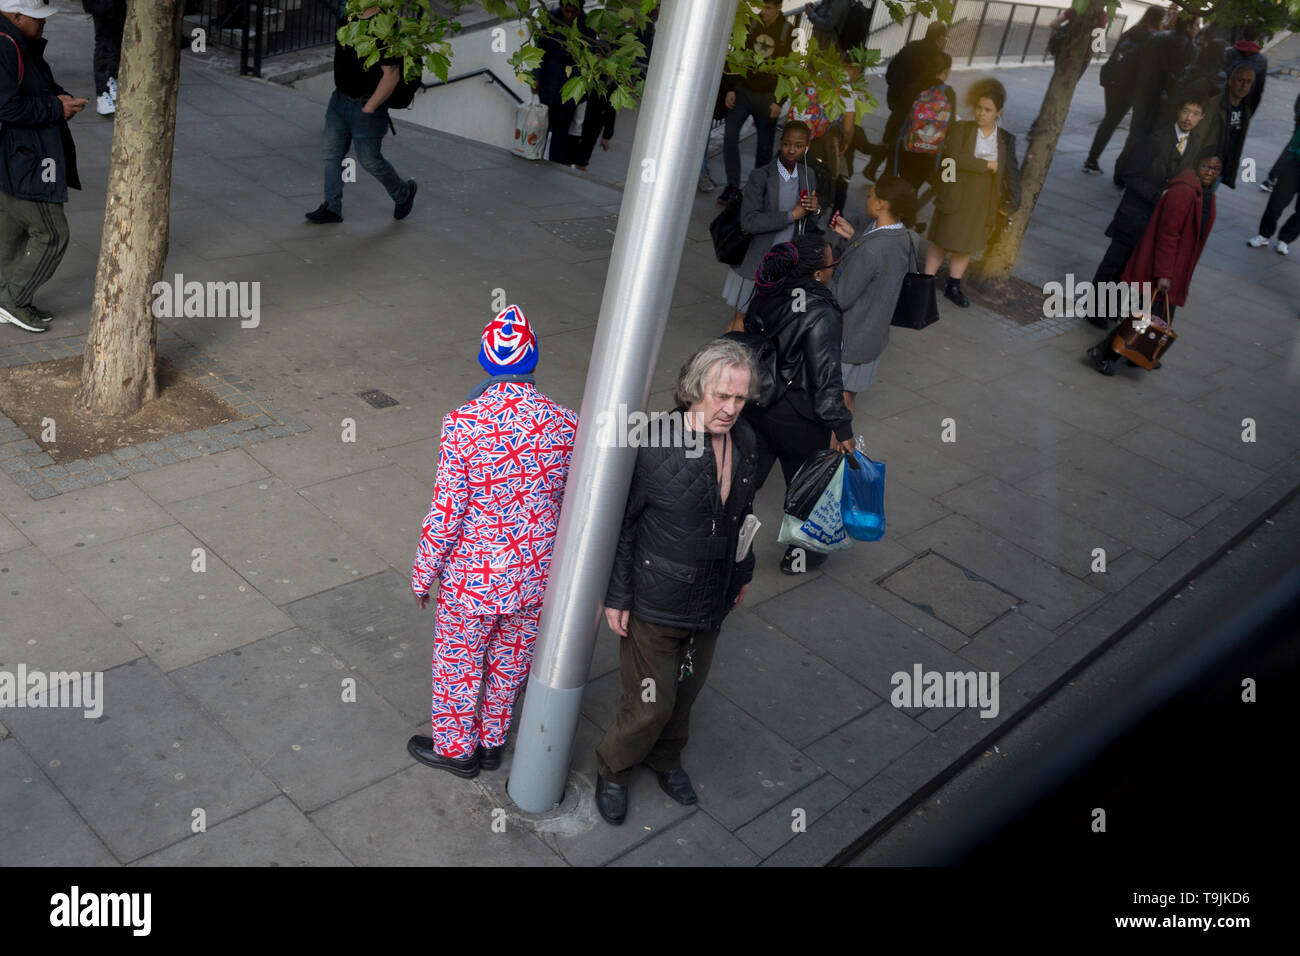 A man wearing a patriotic Union Jack suit waits for the next bus along with other commuters at Elephant & Castle in Southwark, south London, on 10th May 2019, in London, England. - Stock Image